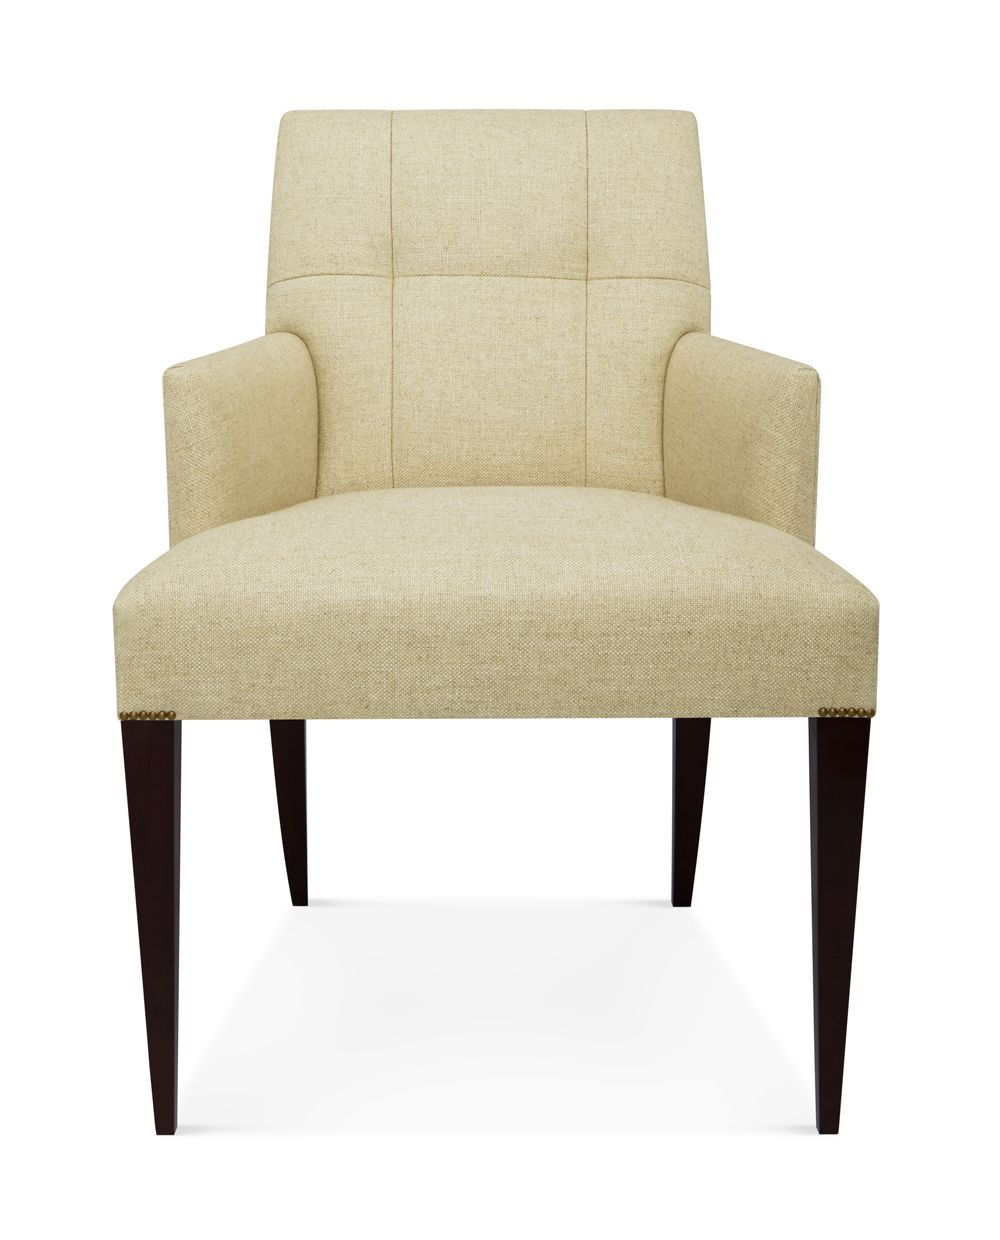 Houzz Dining Chairs Contemporary Toyo Revolving Chair Thomas Pheasant Modern Stitching Baker Furniture Places To Visit